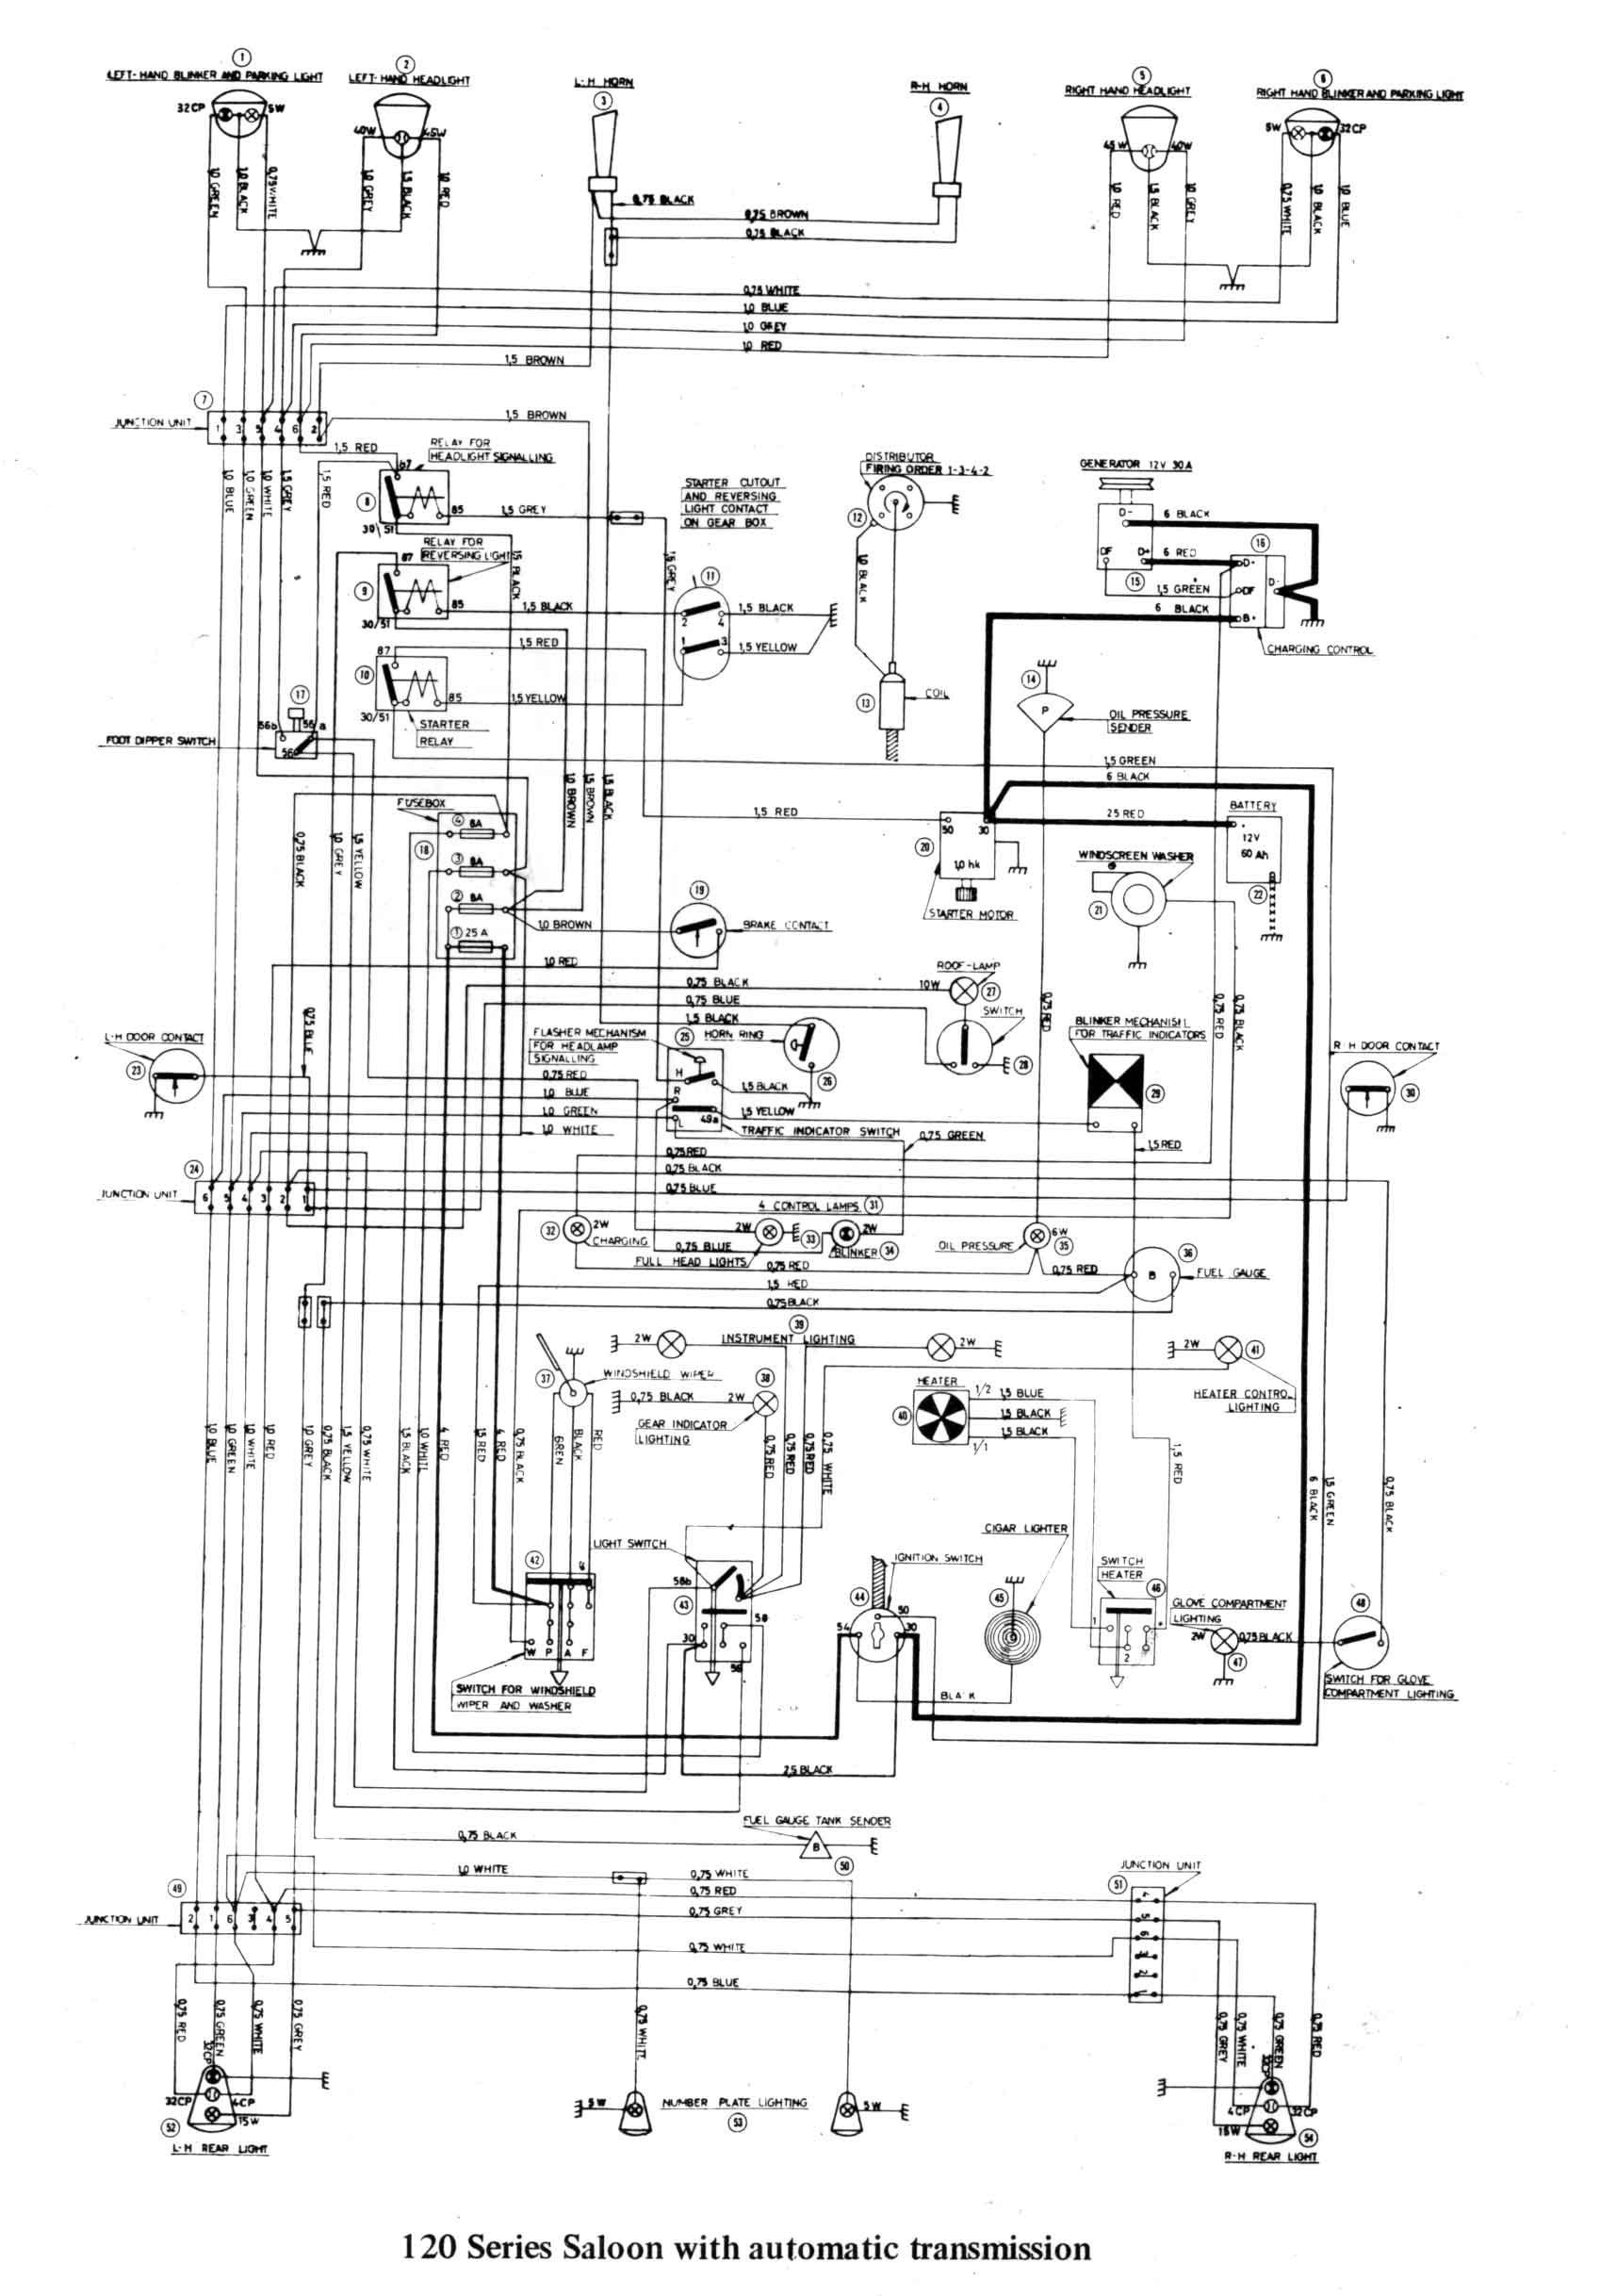 Wiring Diagram For Relay For Horn New Ezgo Wiring Diagram Unique Starter Wiring Diagram Elegant Sw Em Od